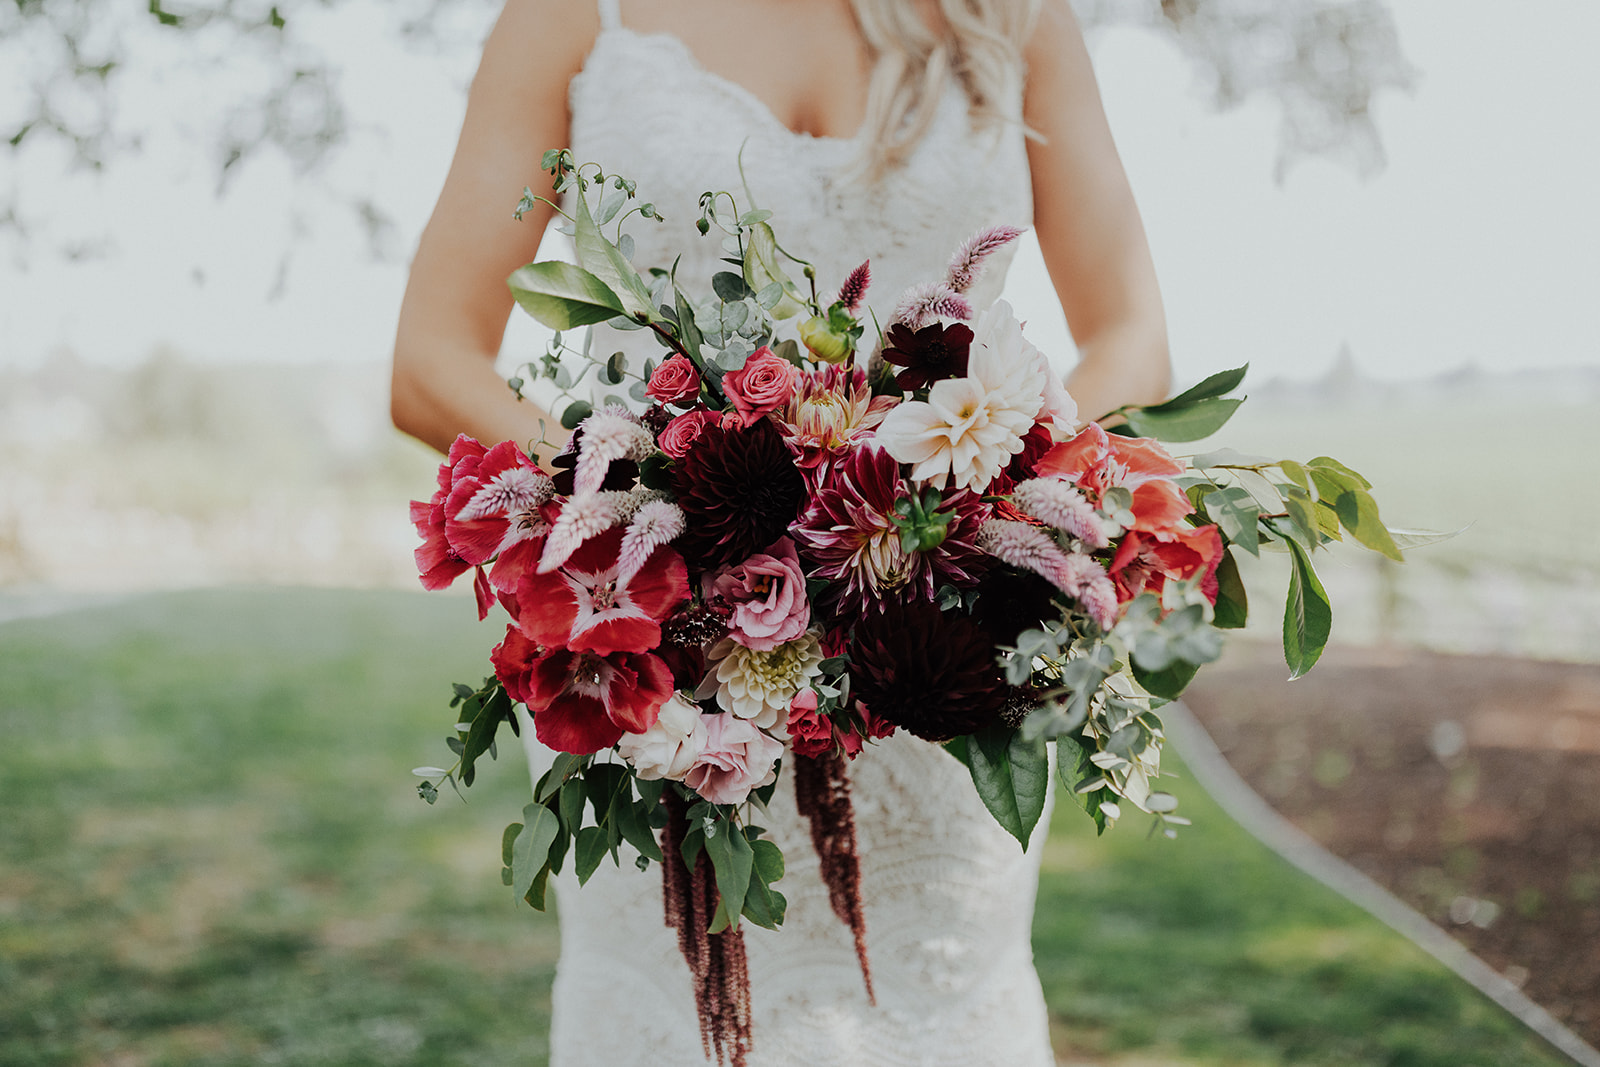 Cascading bridal bouquet in rich vibrant shades by Venn Floral for a stylish Summer wedding at Ru's Farm in Healdsburg photographed by Logan Cole.